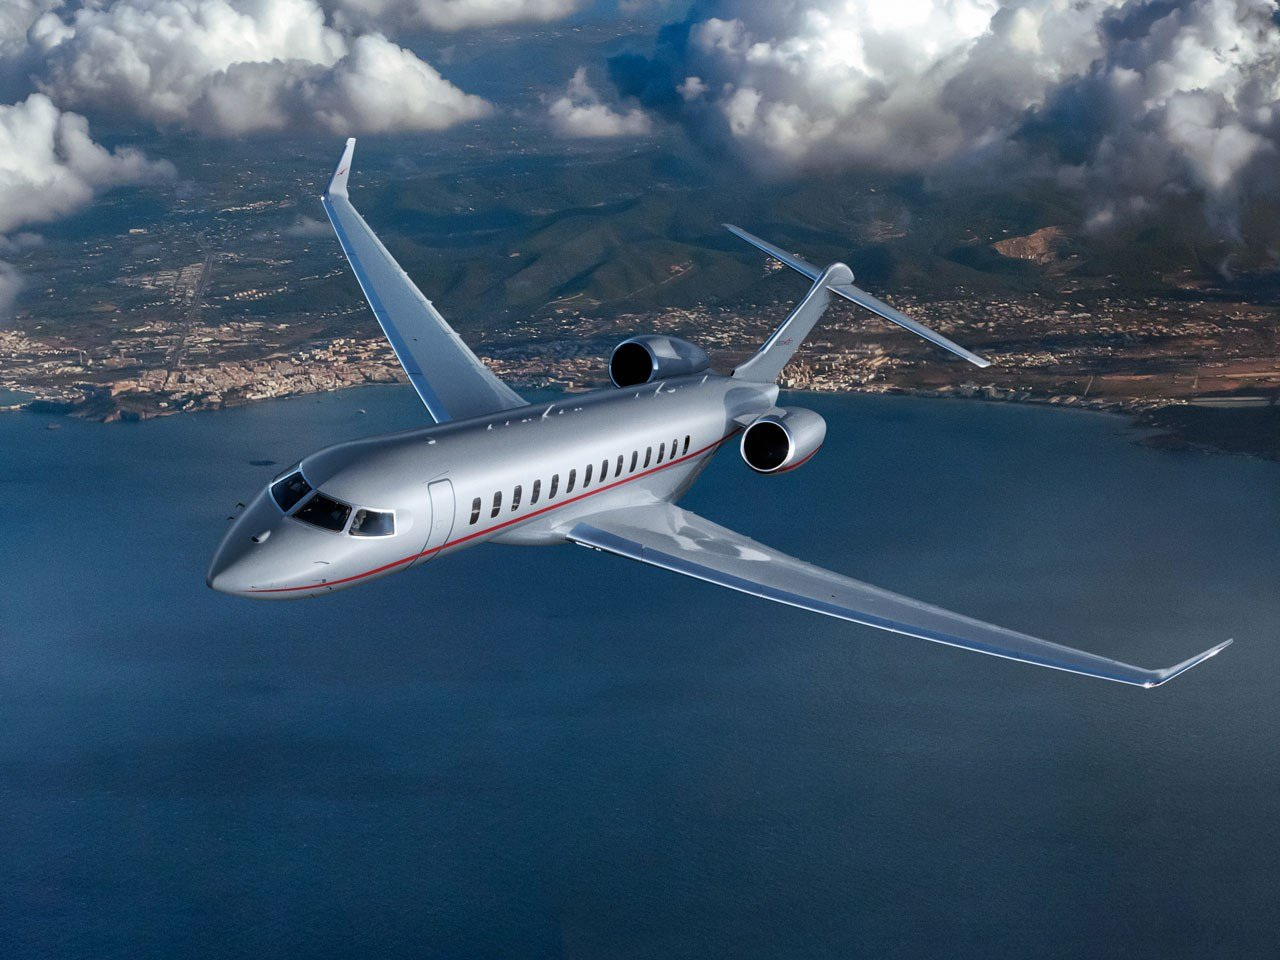 VistaJet pledge comp flights for medics, repatriation